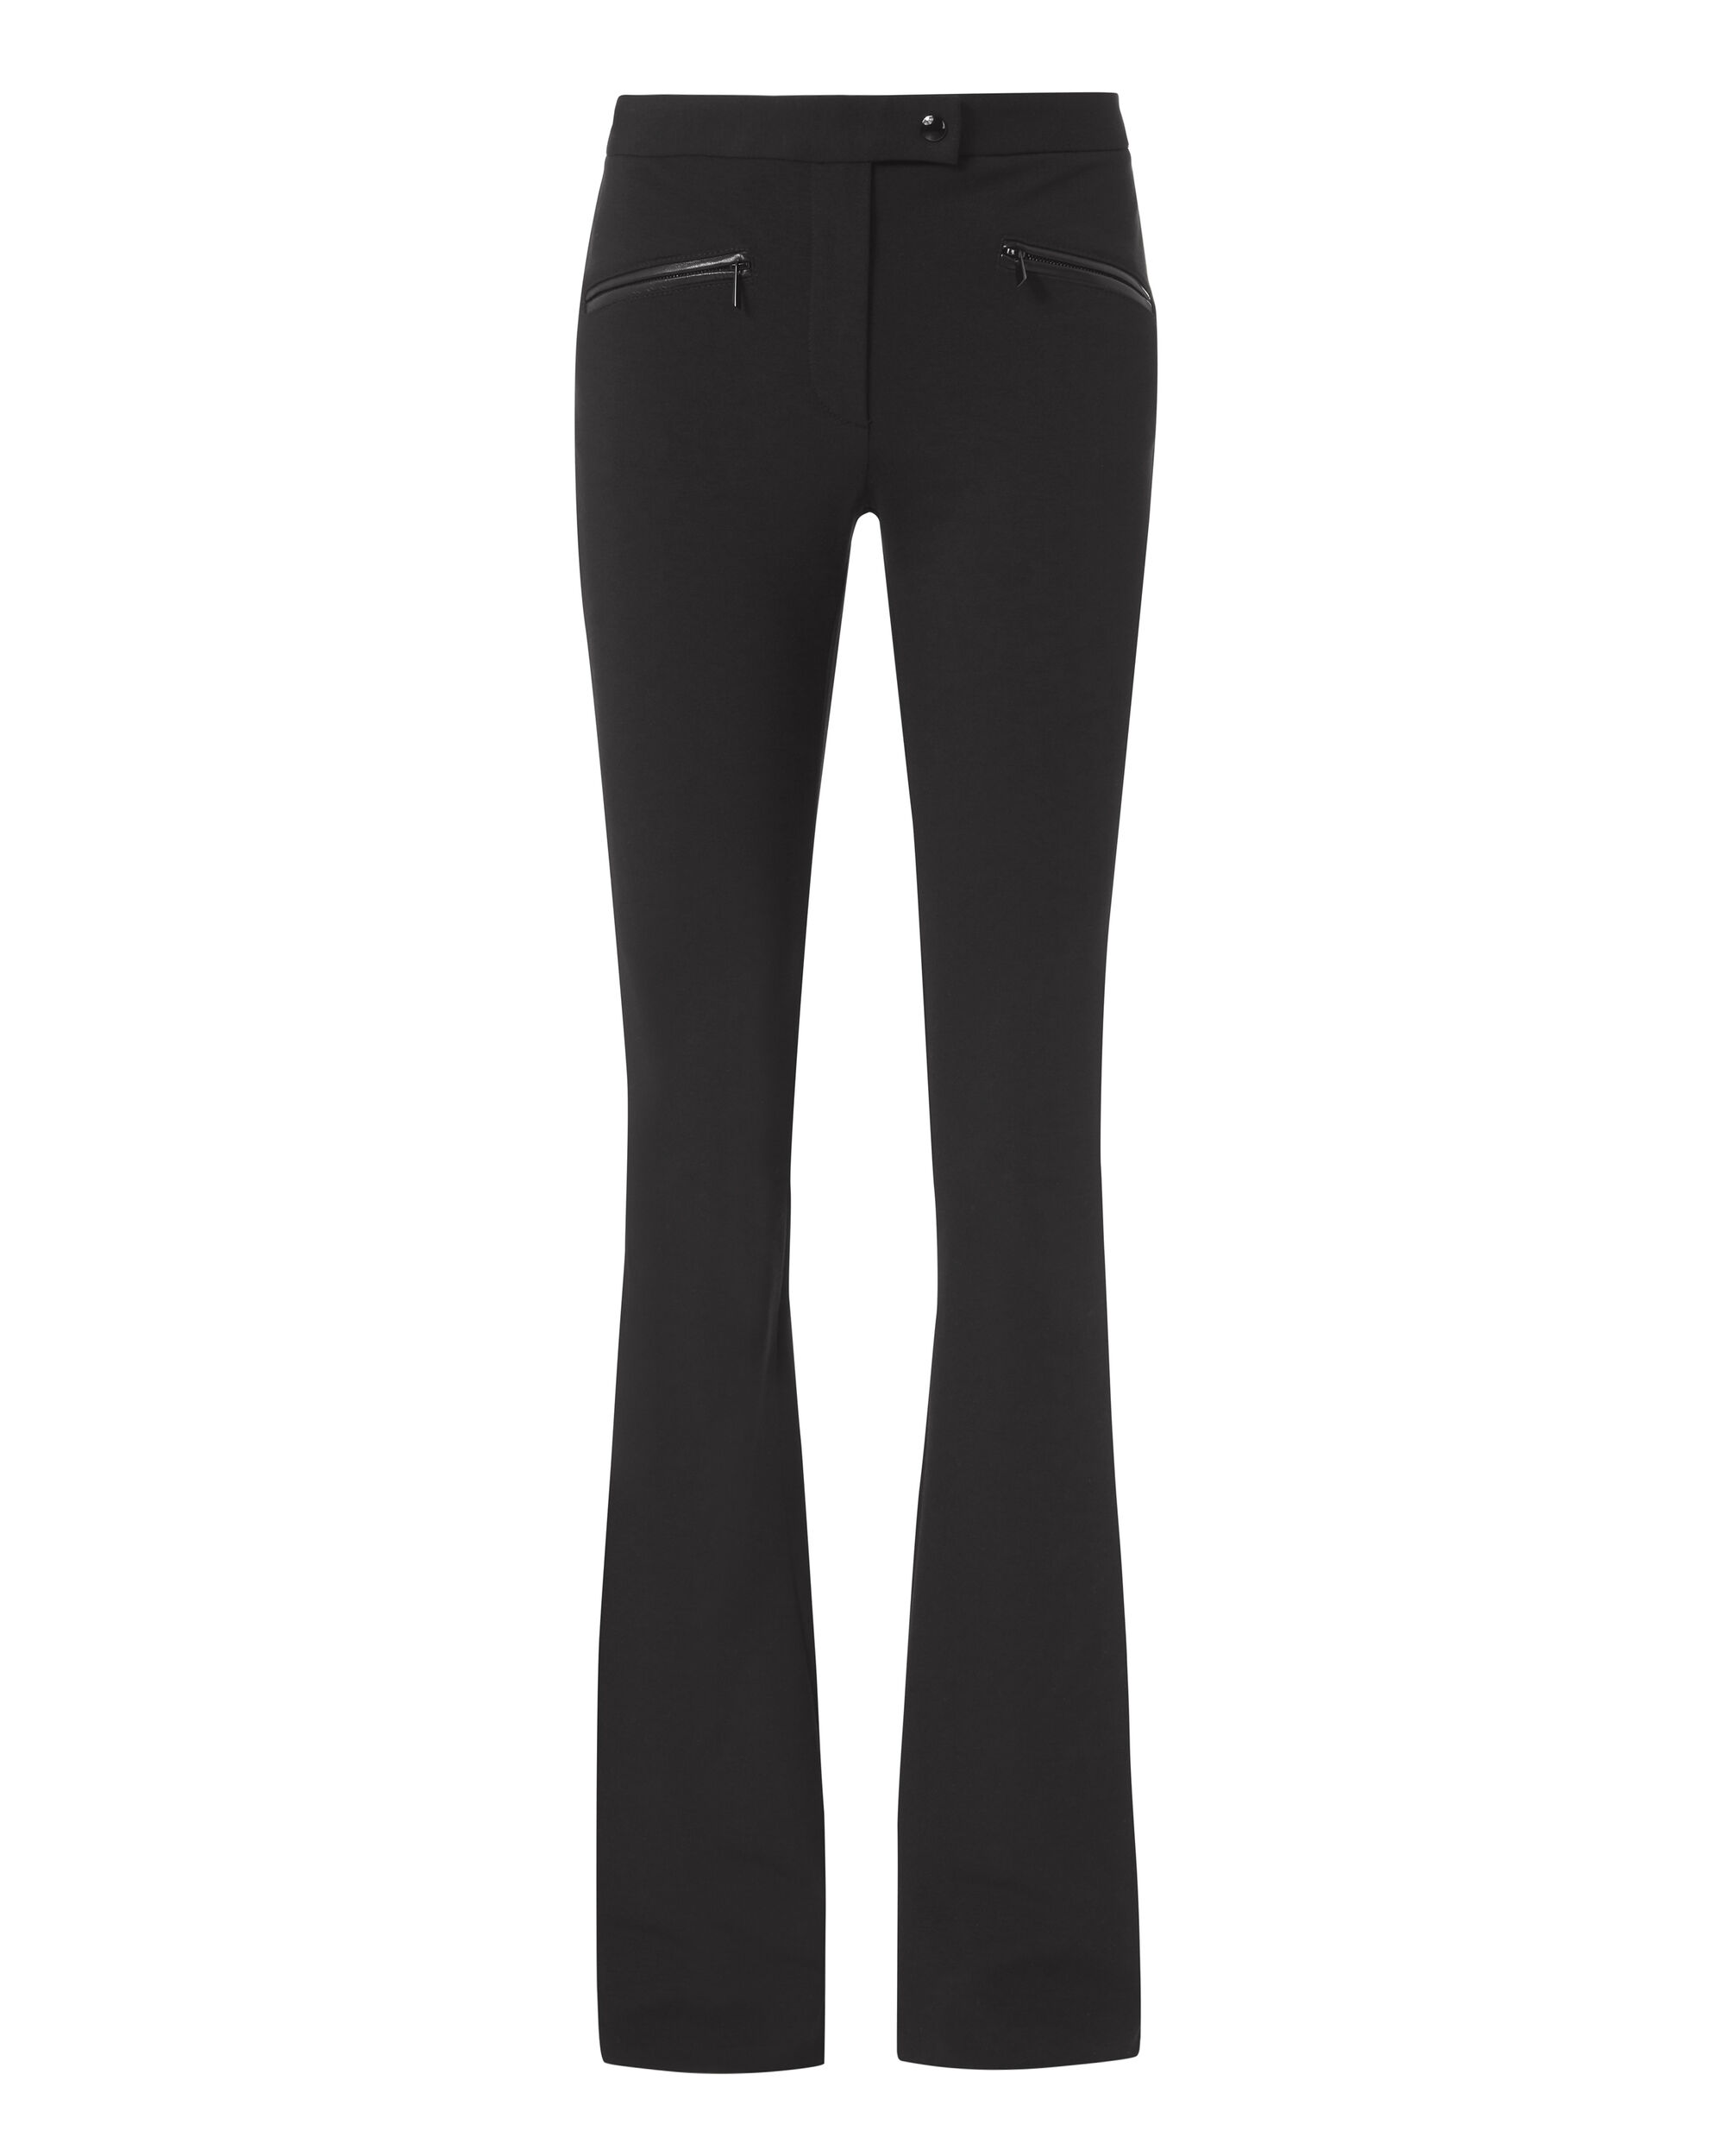 Black High-Rise Flare Pants, BLACK, hi-res